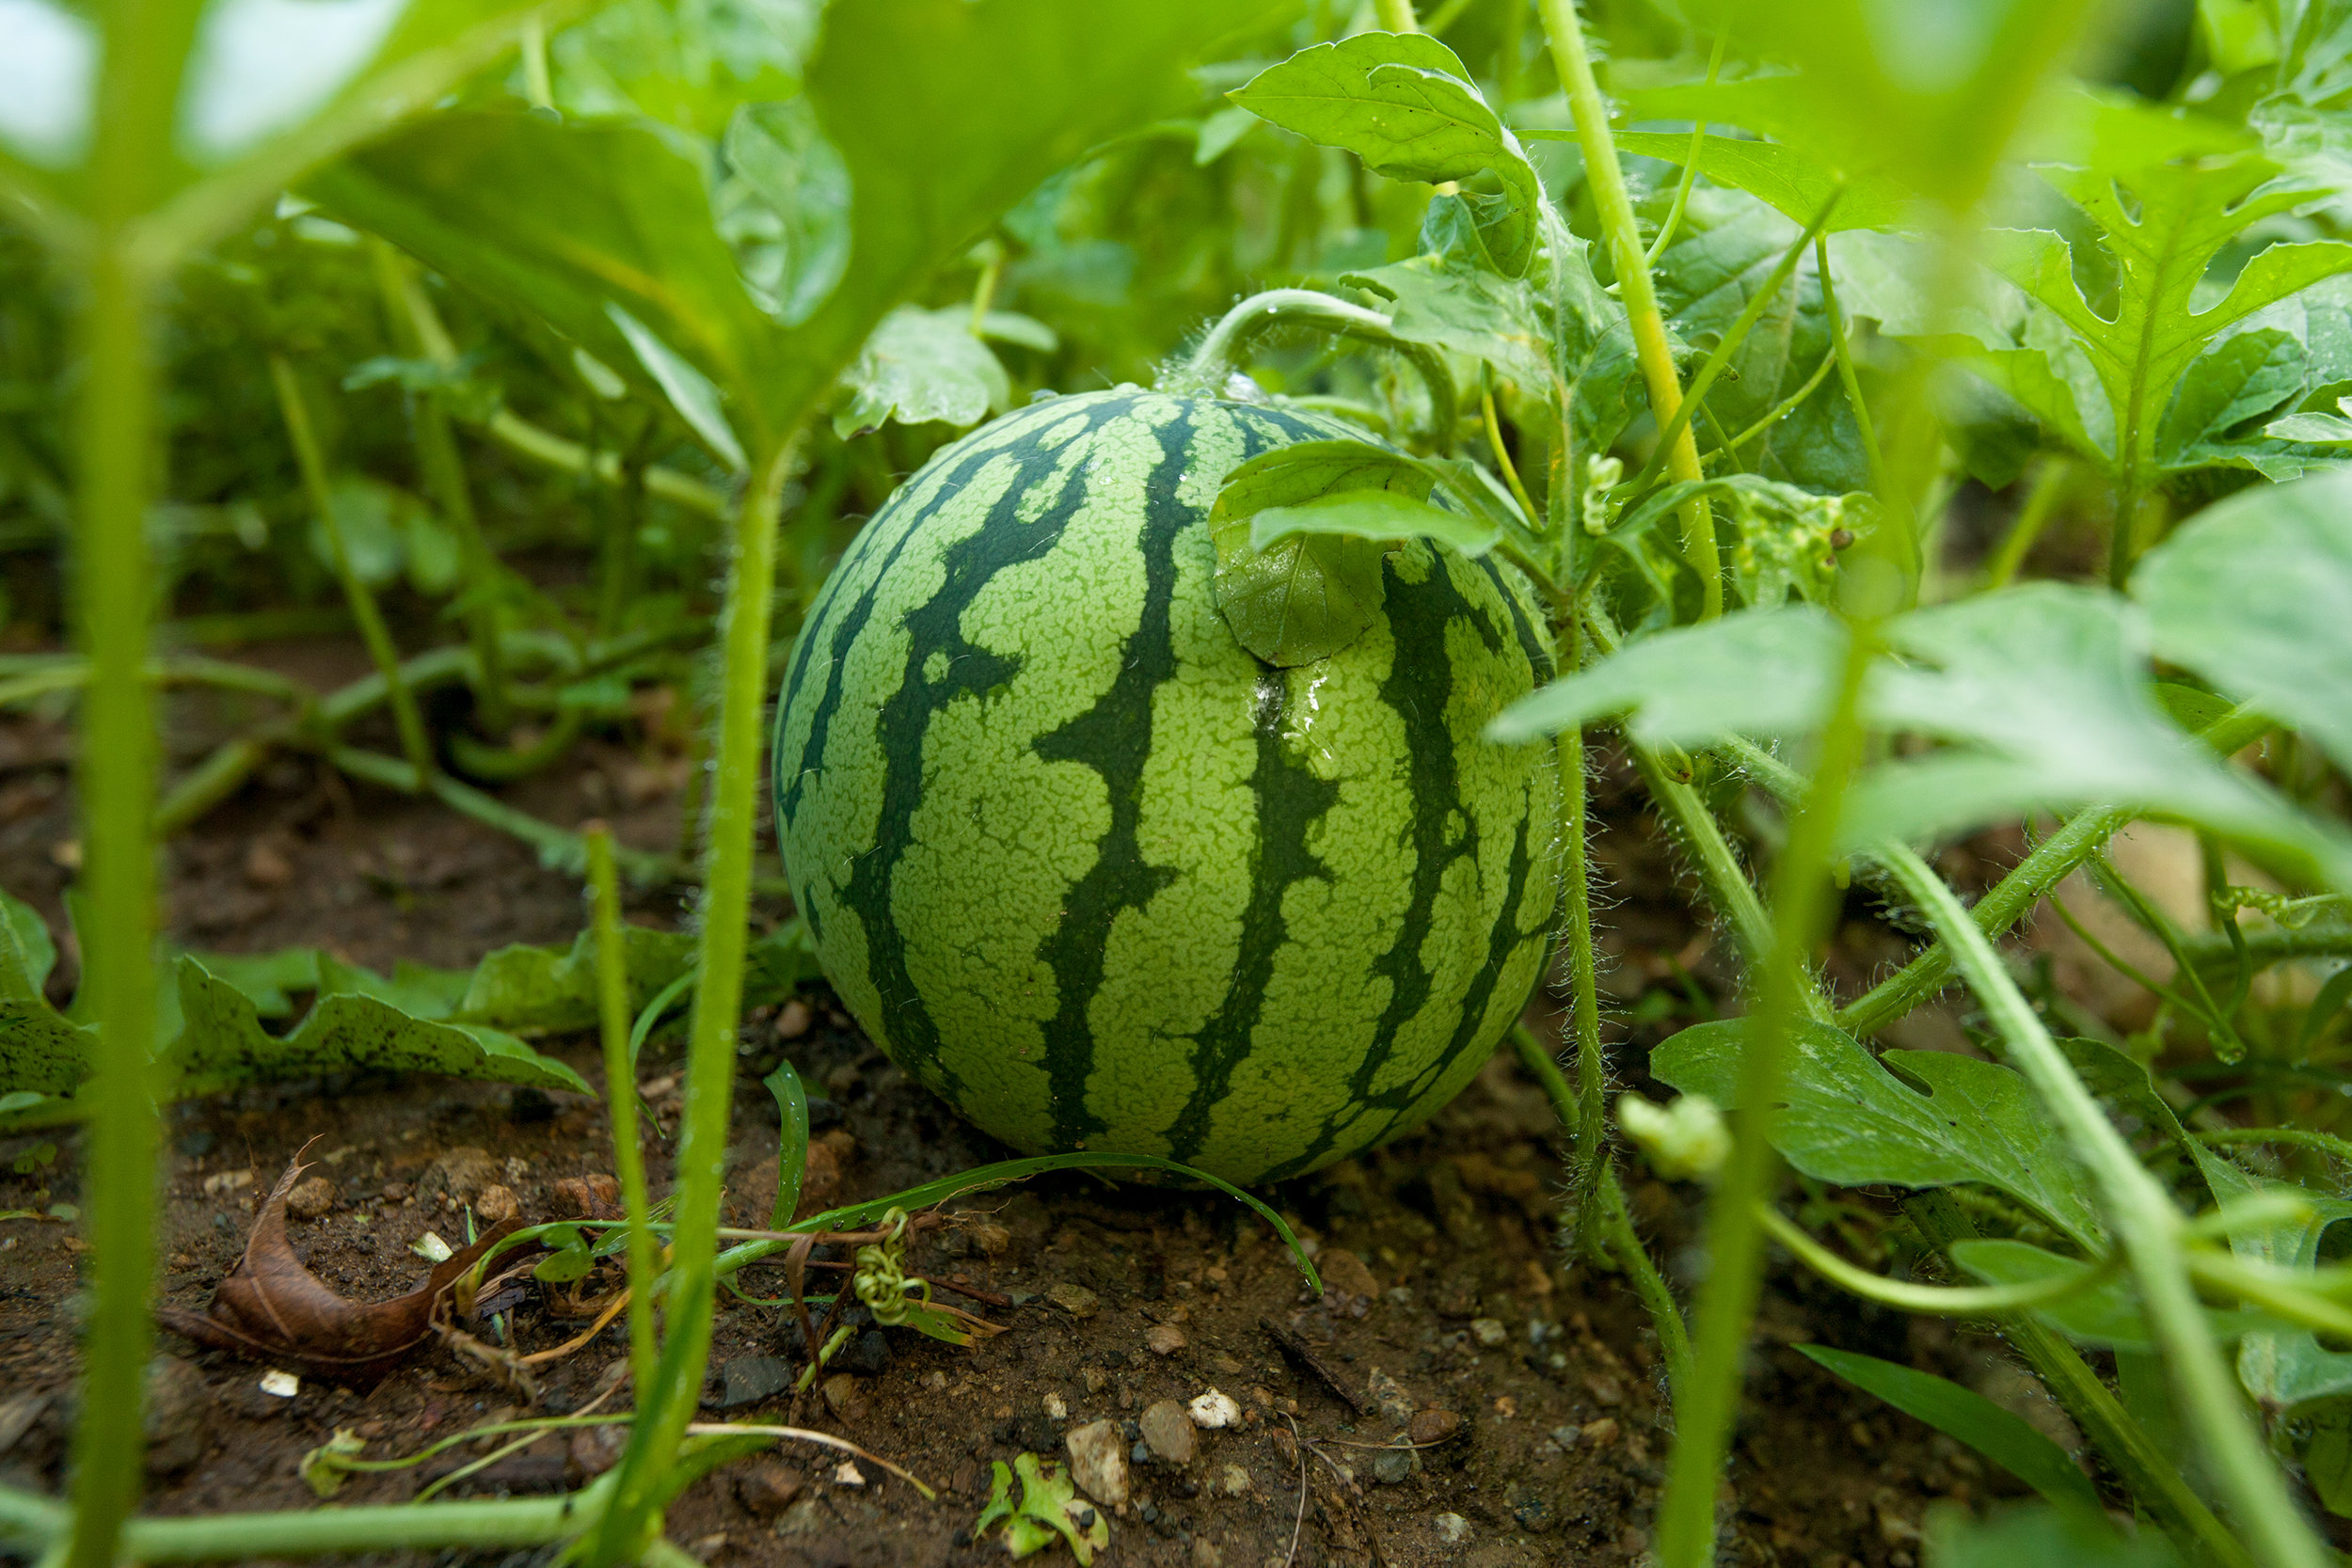 GARDEN-AT-SACRED-GROUND-FARM-WATERMELON-080114-©-JONATHAN-R.-BECKERMAN-PHOTOGRAPHY-39.jpg